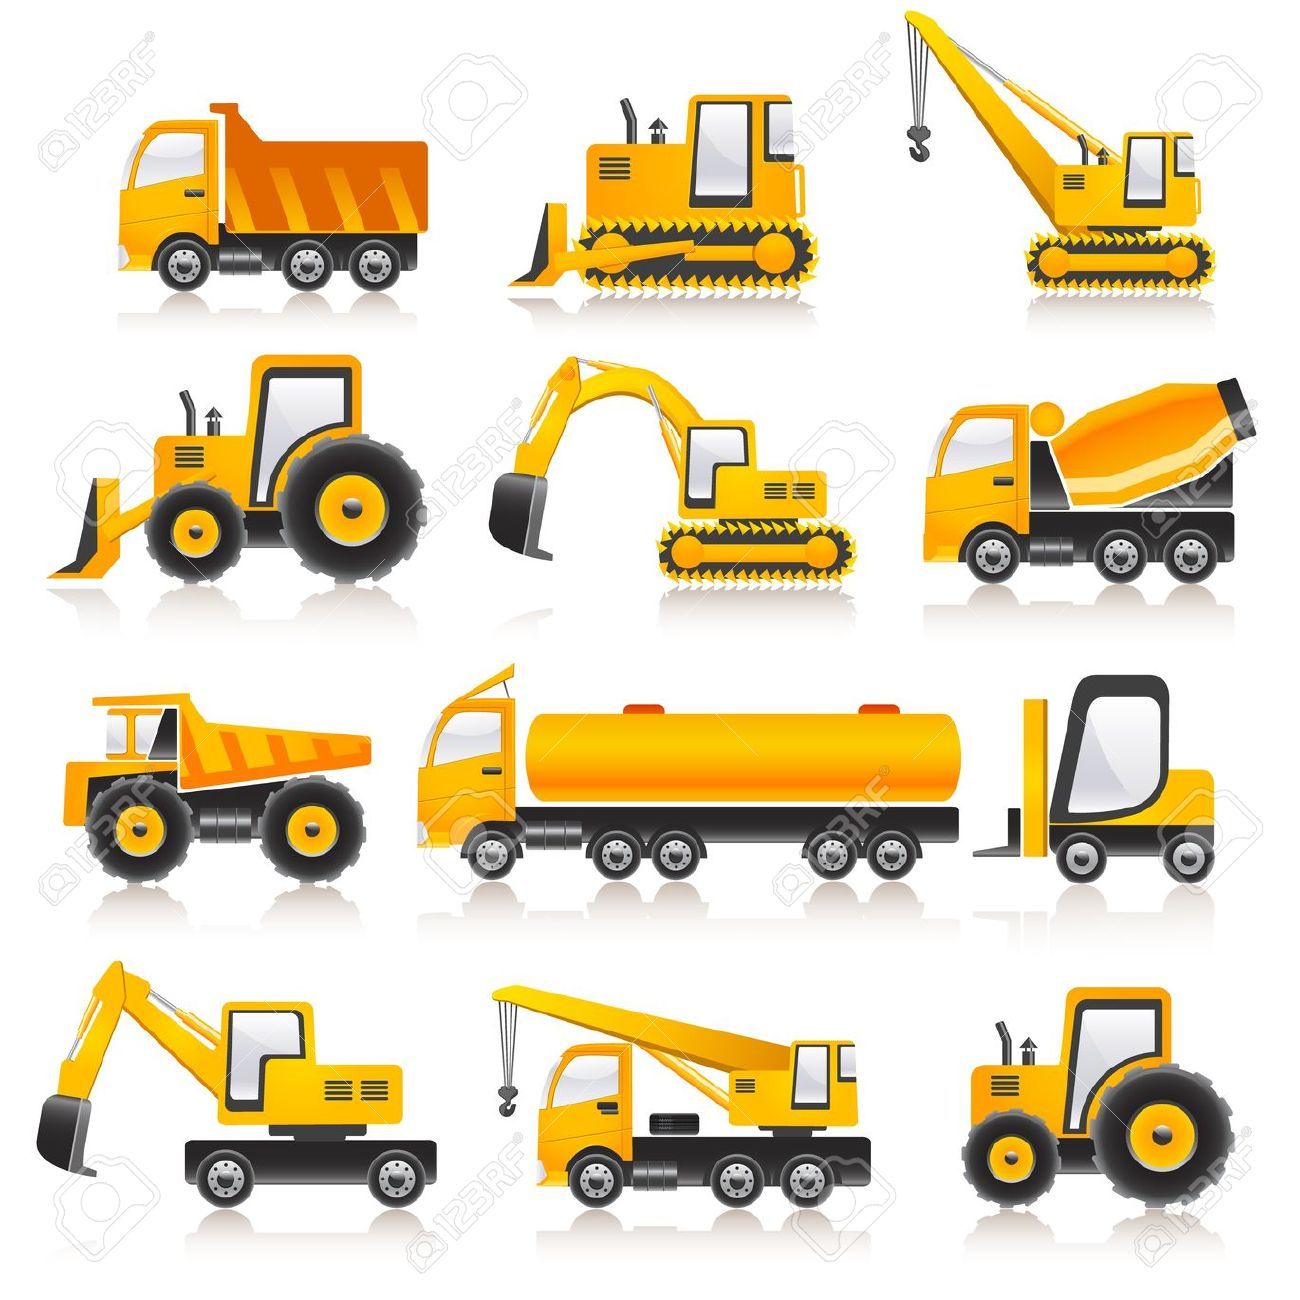 Machines Royalty Free Cliparts, Vectors, And Stock Illustration.